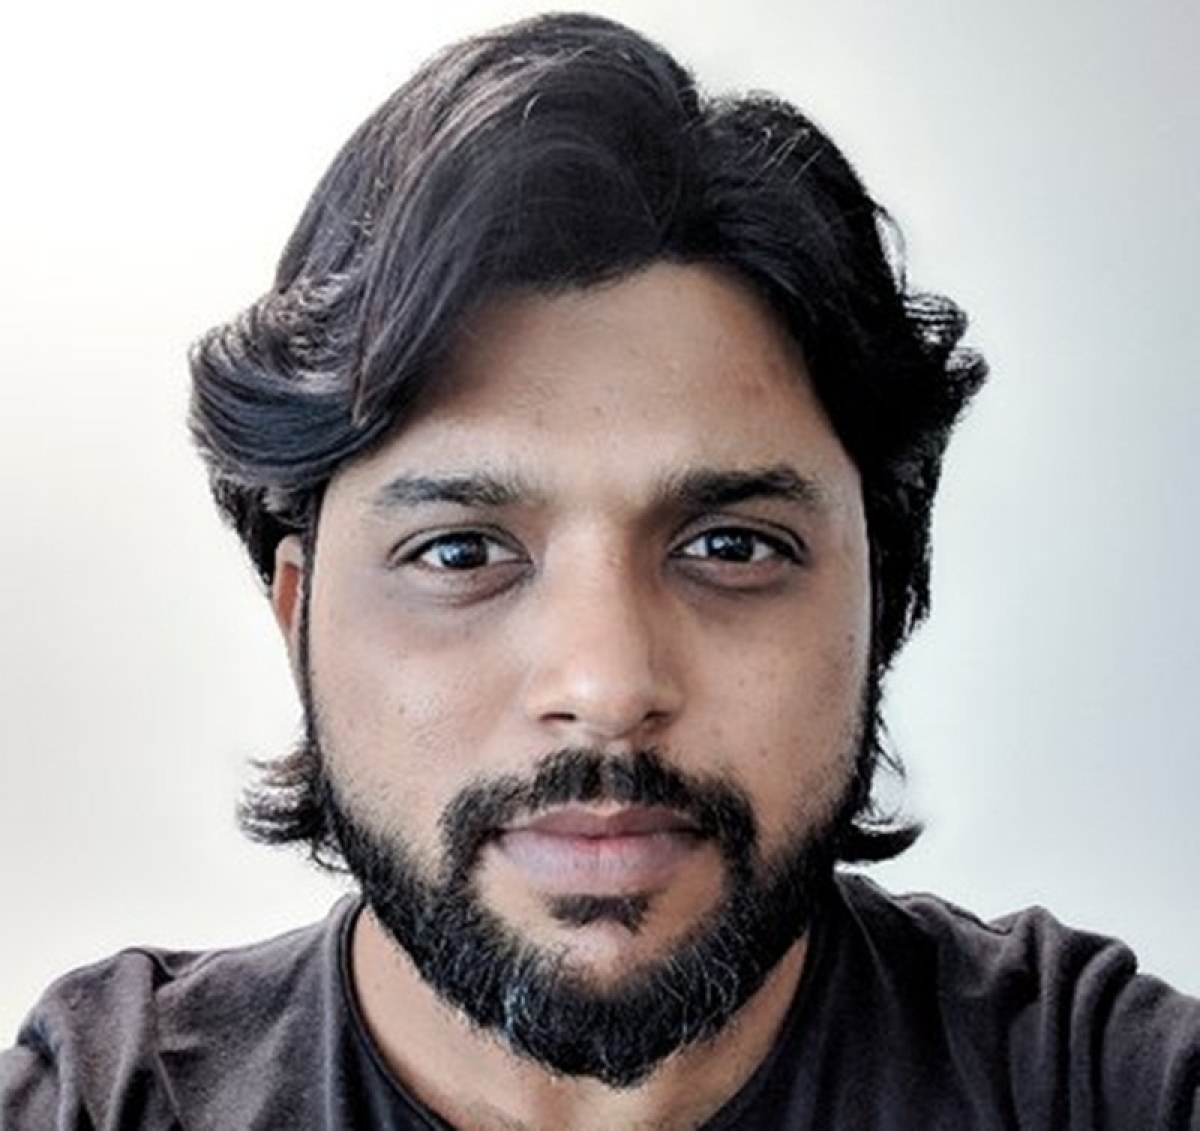 Sri Lanka: Indian-based journalist covering aftermath of Easter terror attack arrested on trespassing charges